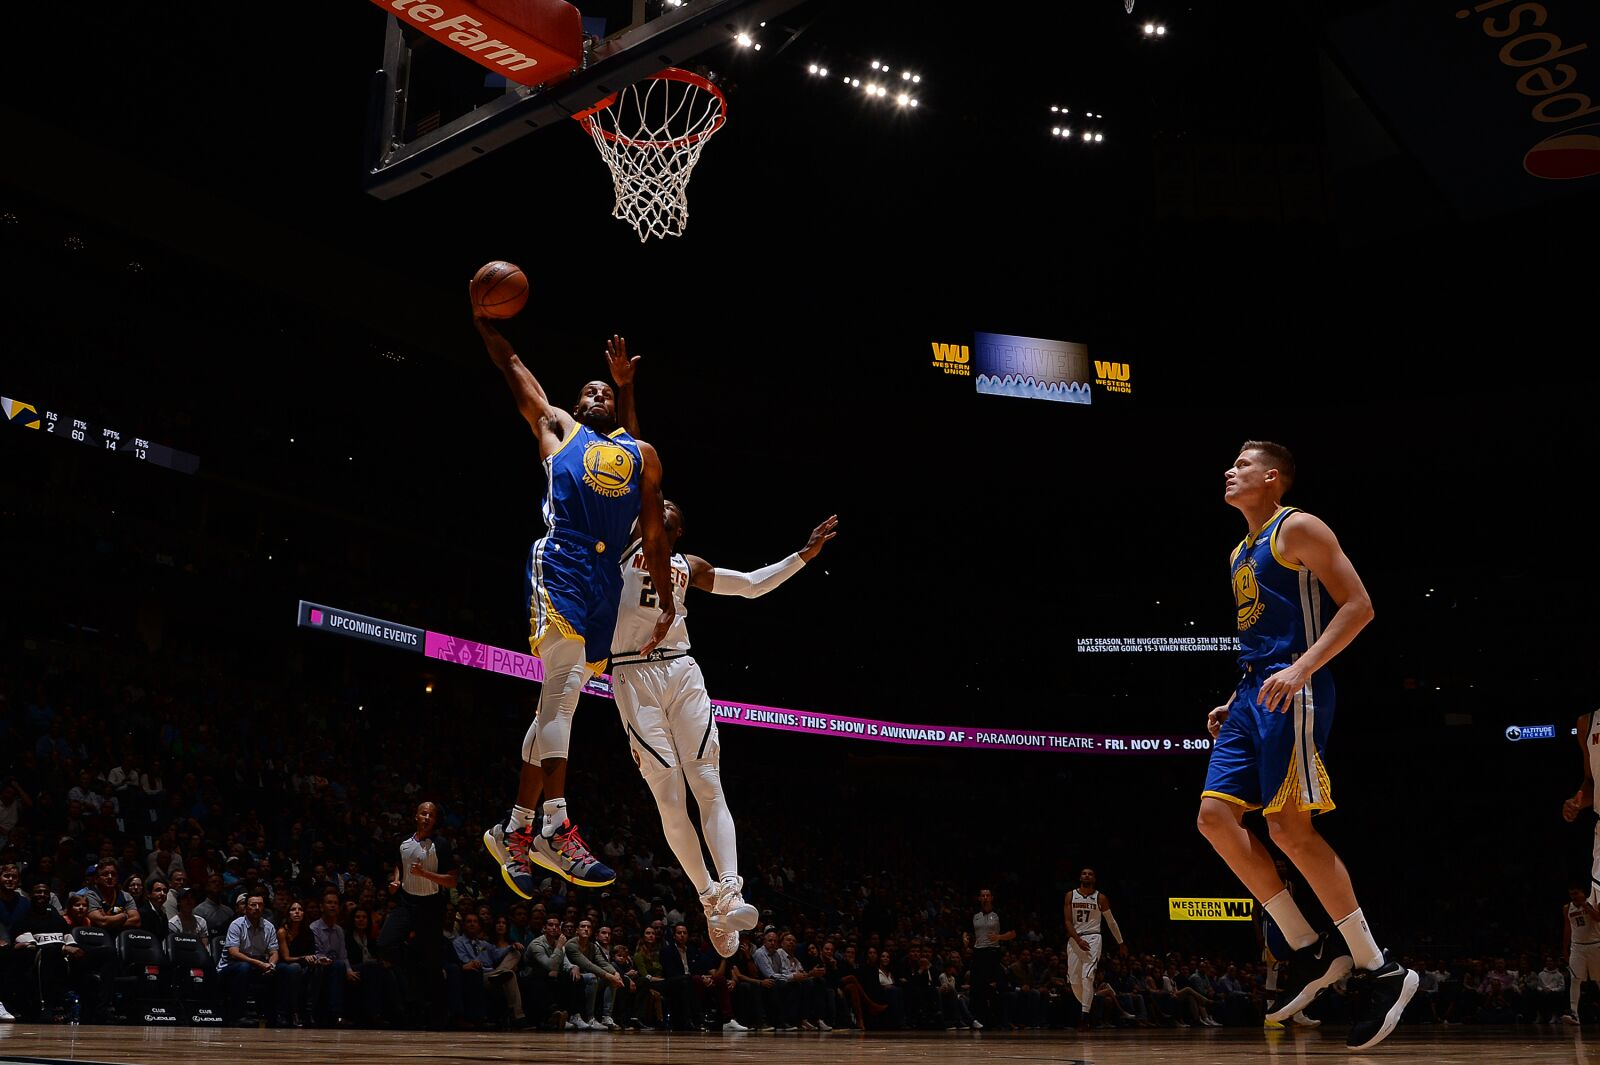 Golden State Warriors: What's happening to Andre Iguodala?